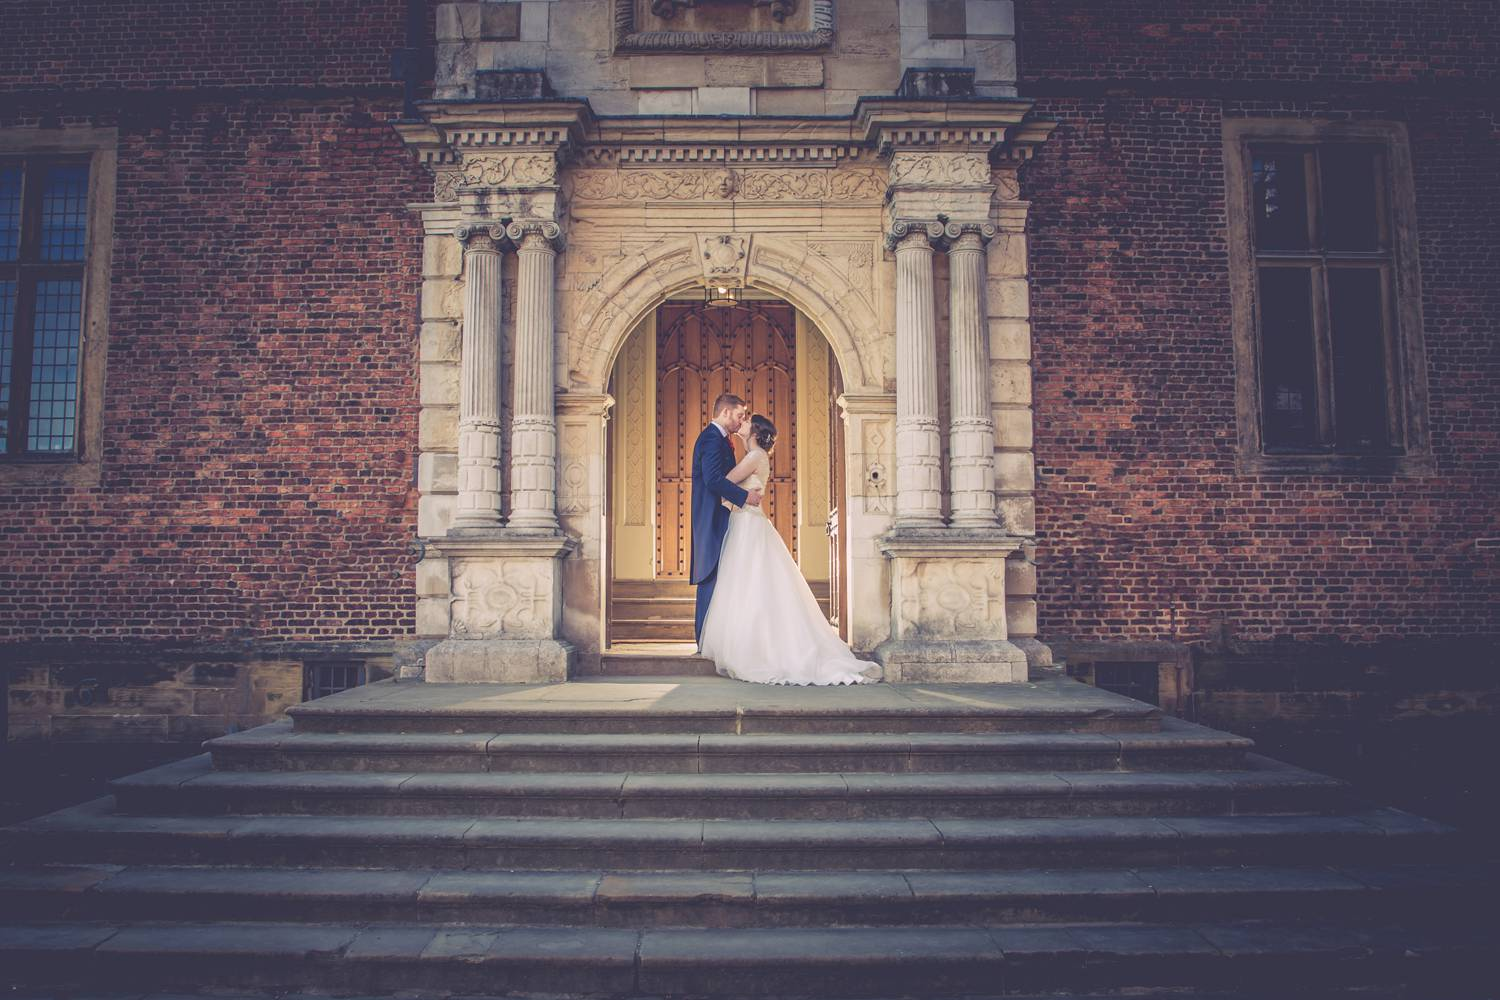 Yorkshire-Wedding-Photographer-Leeds-Temple-Newsam-16